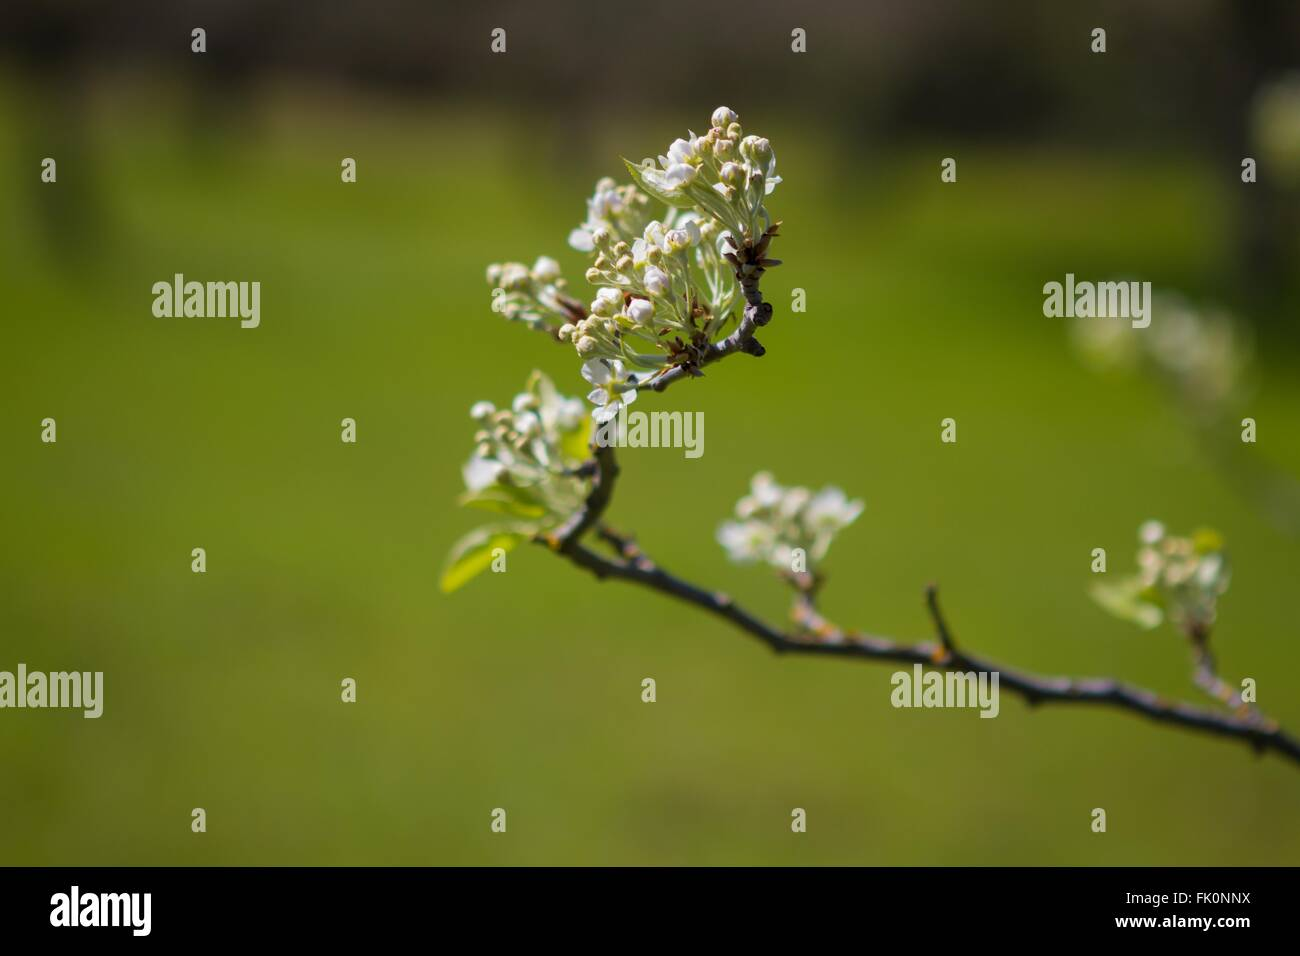 Blossom, Historic Monroe Orchard, Marshall Gold Discovery State Historic Park, Coloma, California - Stock Image